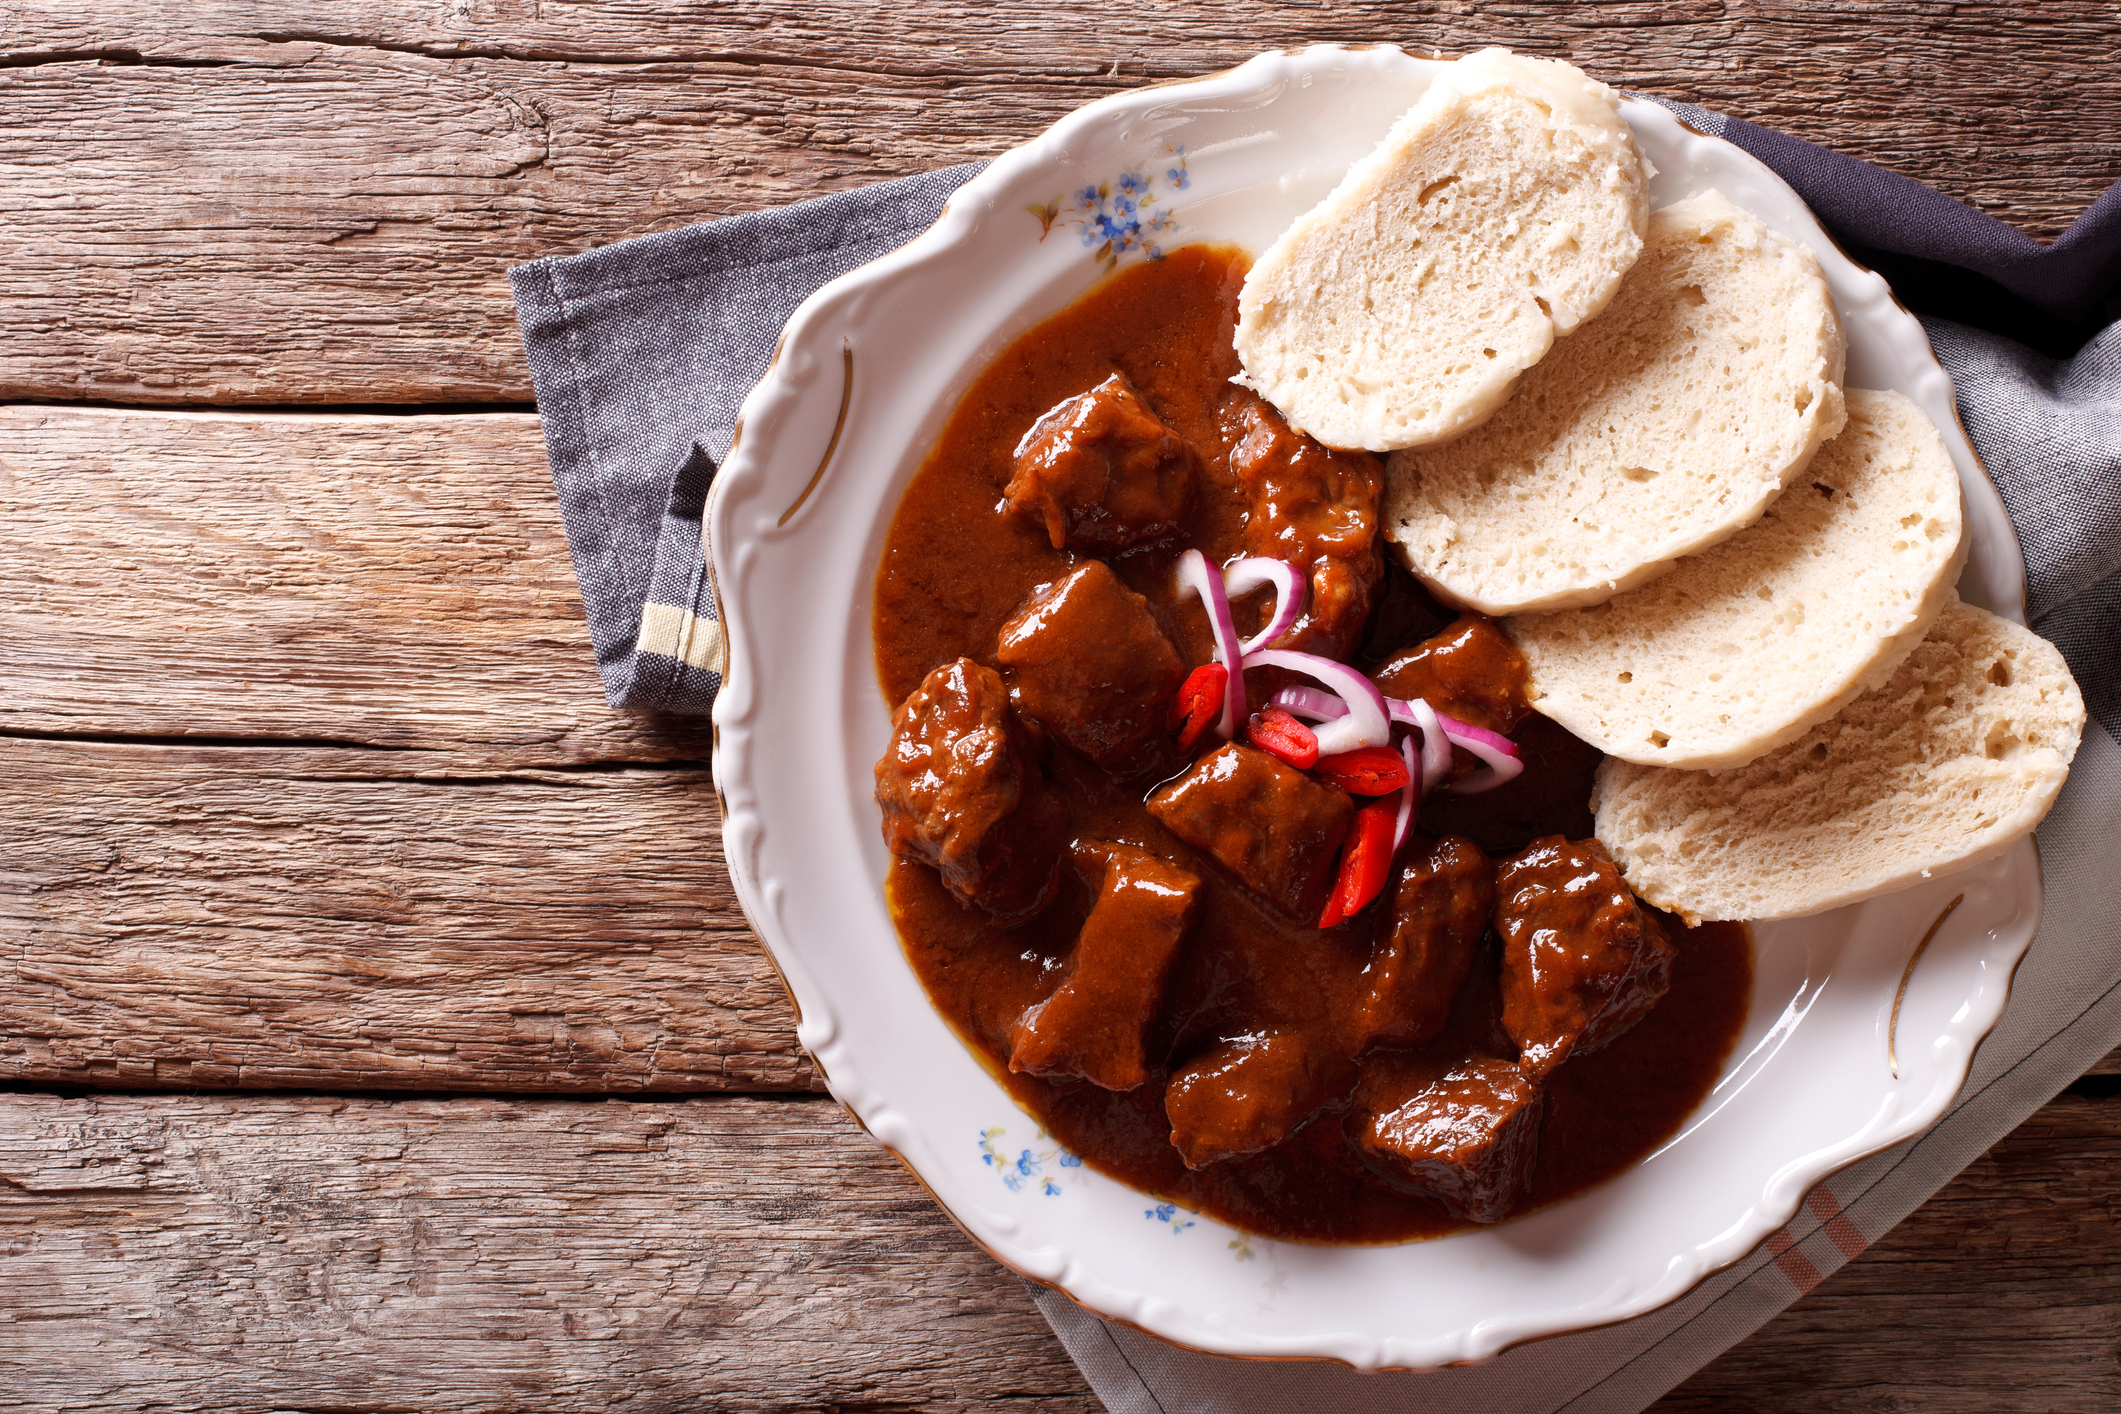 Homemade Hot Czech Goulash With Knodel In A Plate Close Up